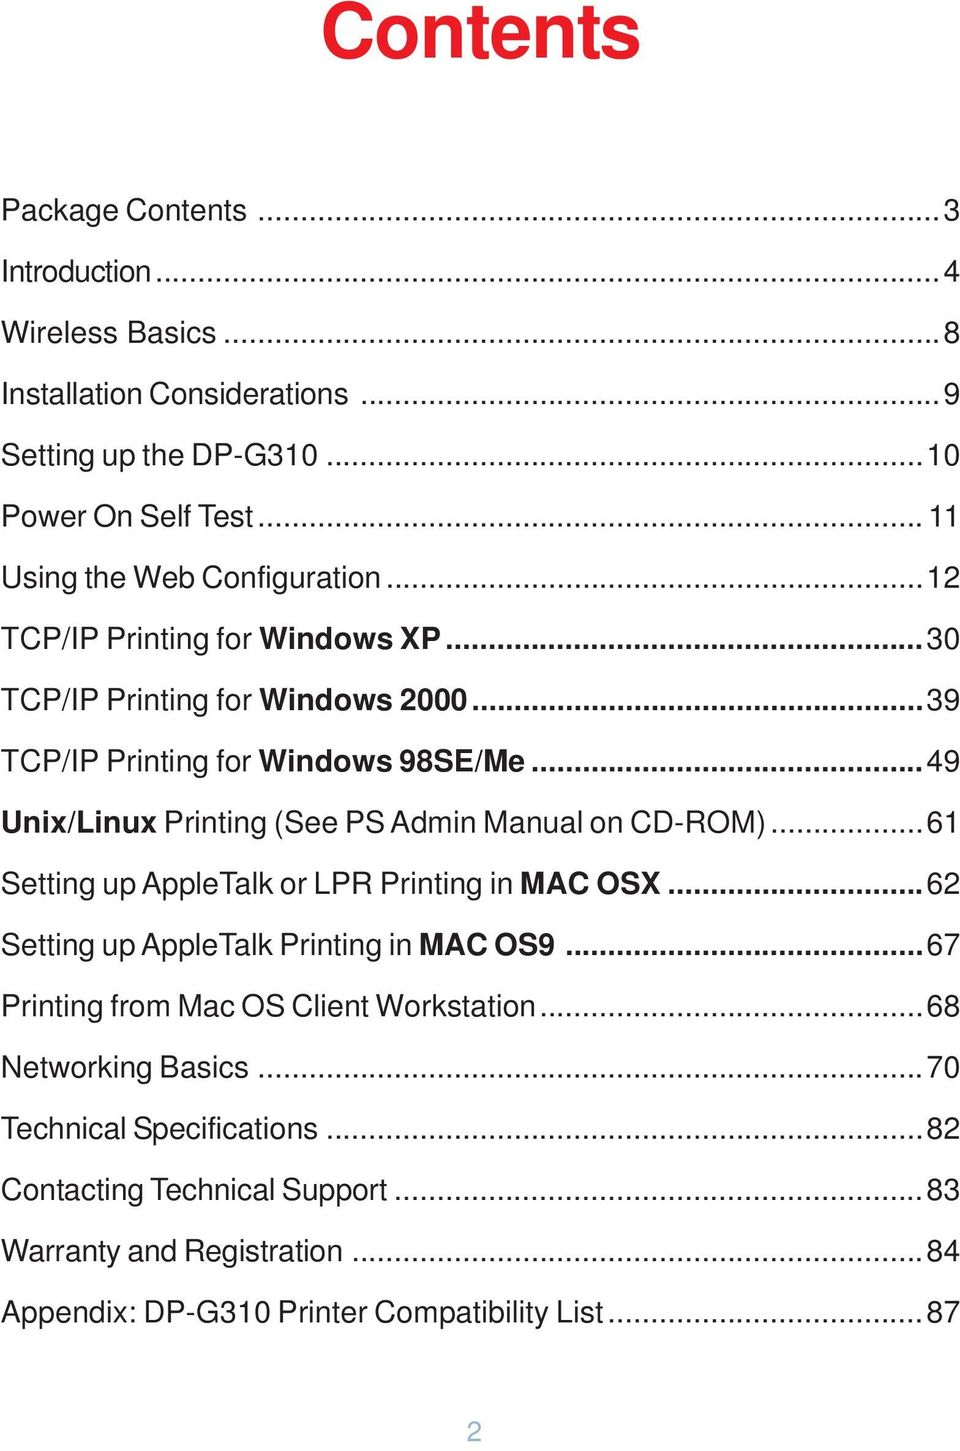 ..49 Unix/Linux Printing (See PS Admin Manual on CD-ROM)...61 Setting up AppleTalk or LPR Printing in MAC OSX...62 Setting up AppleTalk Printing in MAC OS9.